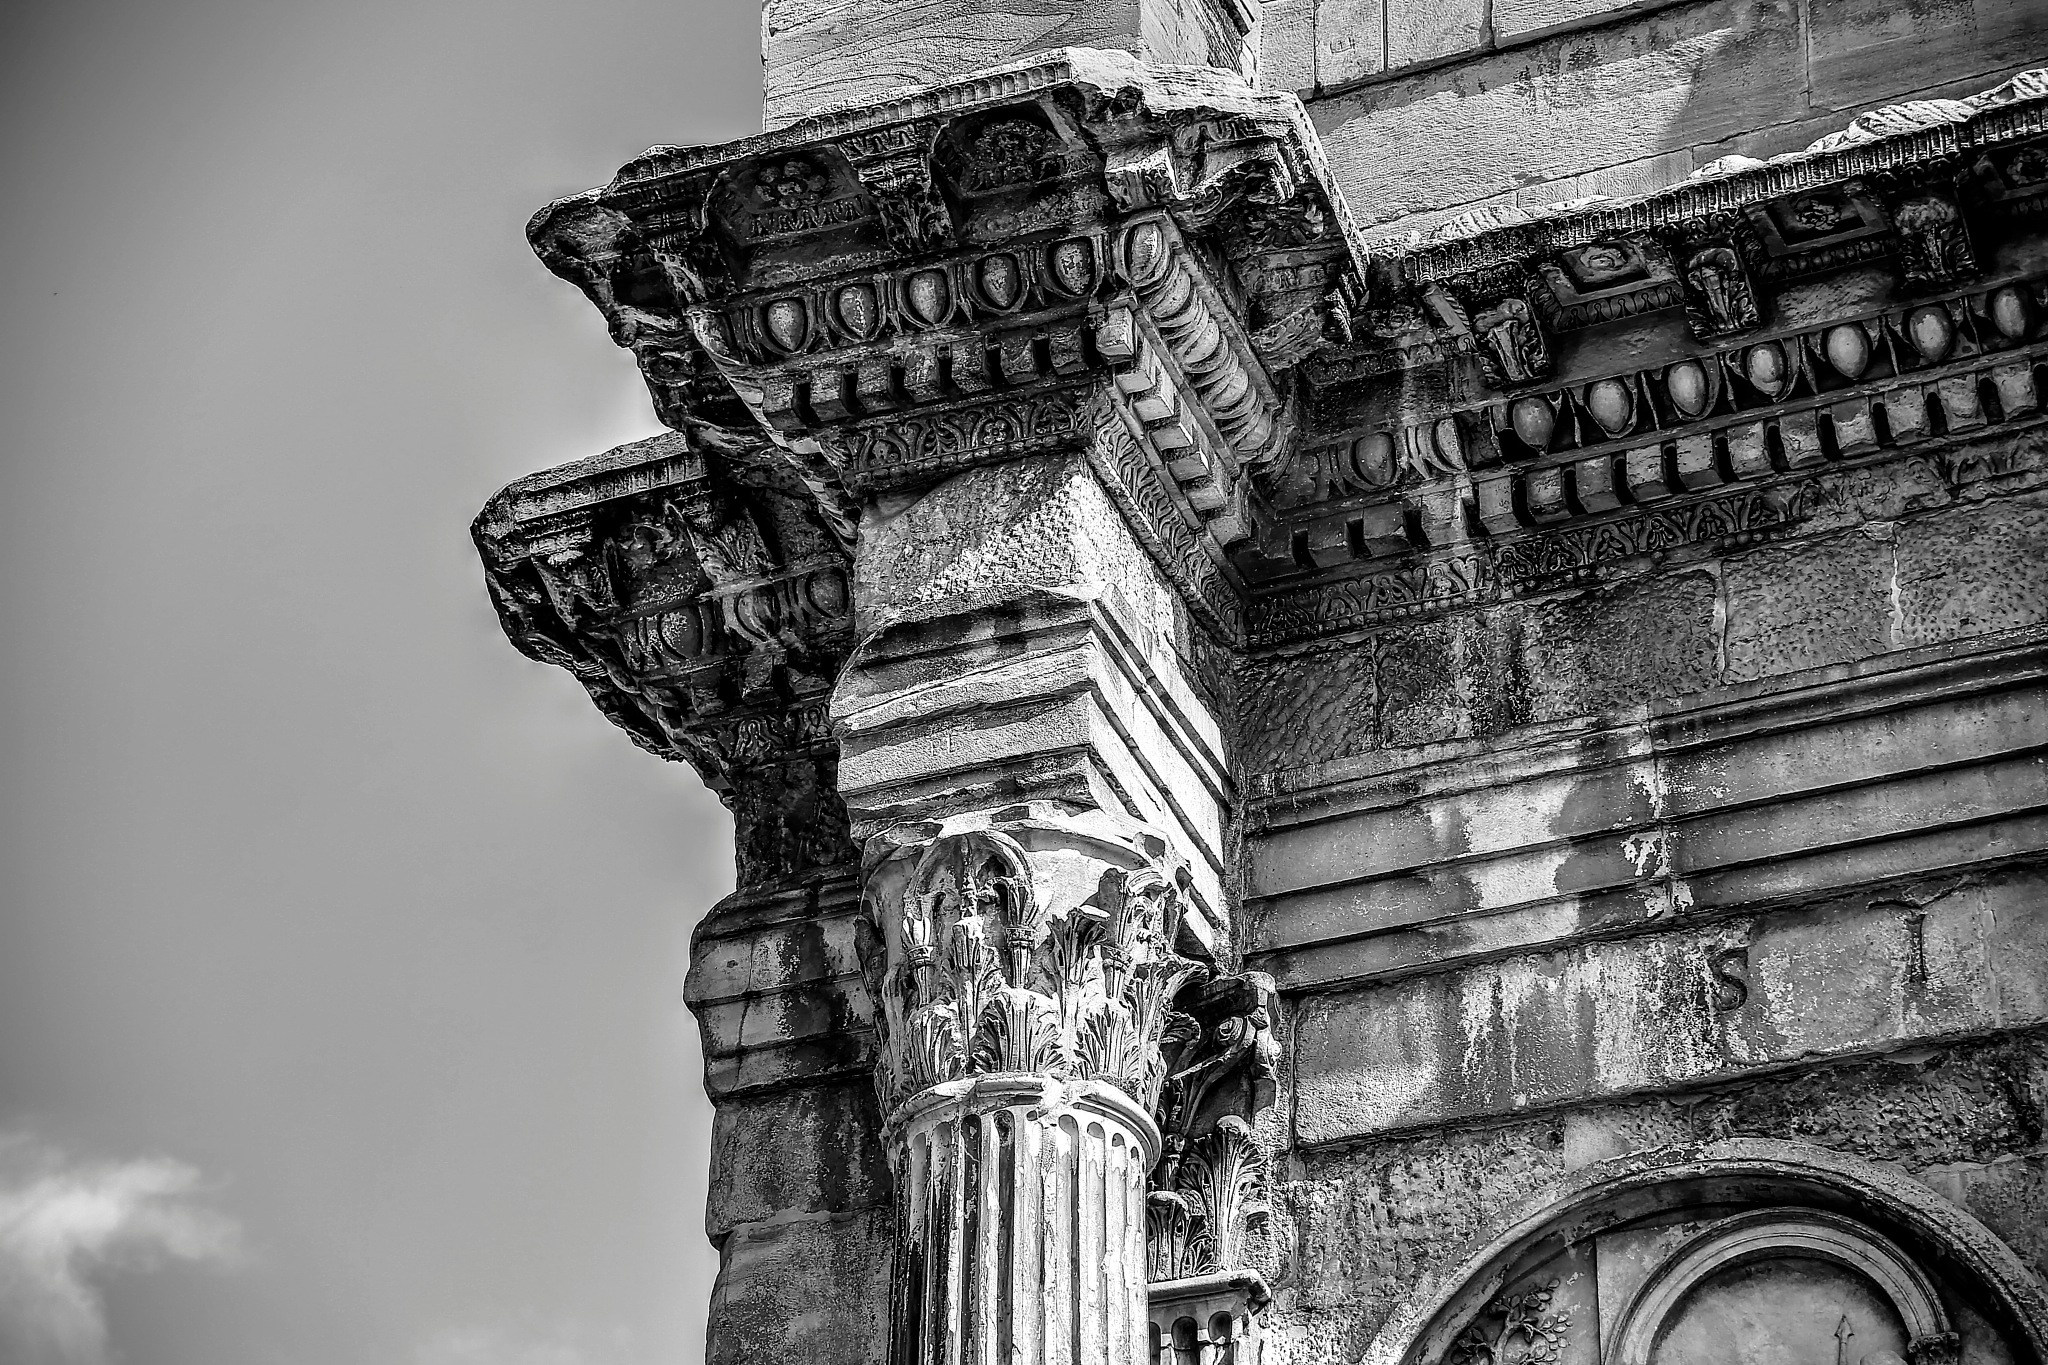 The amazing details of Colloseum by catharina.rytter